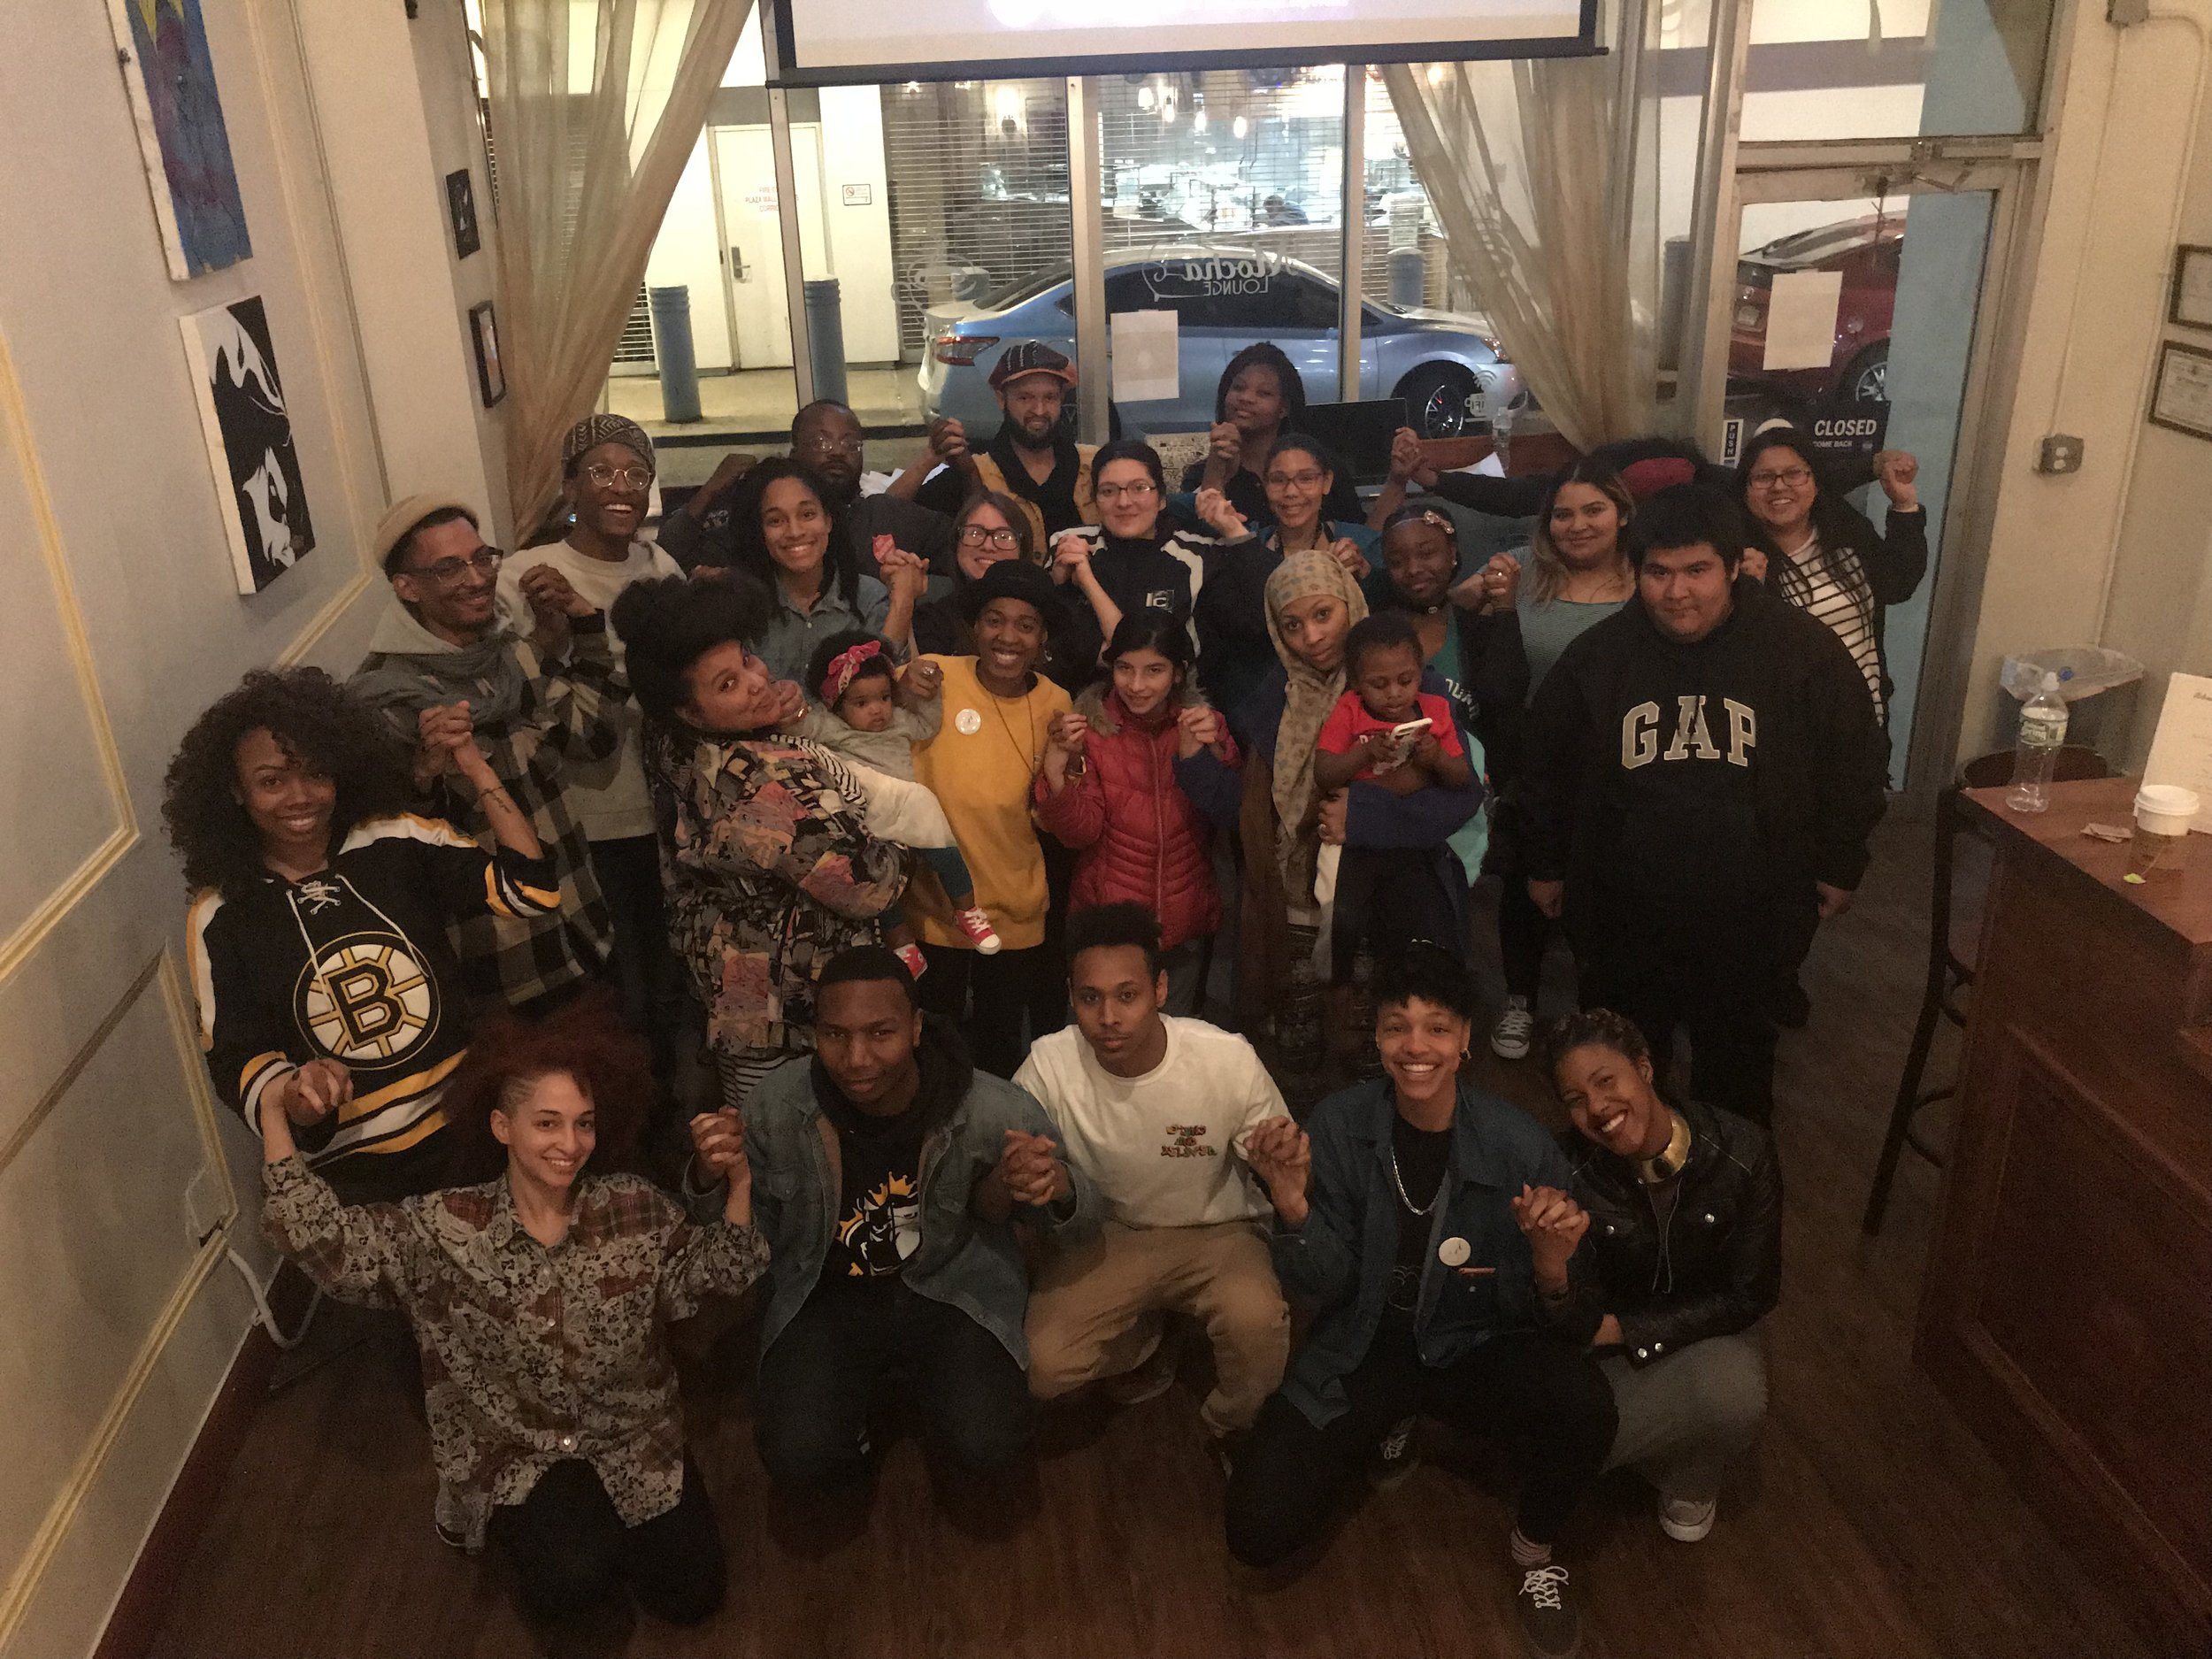 The first Future Cloud Youth Empowerment Open Mic for 2018 was a success. The event took place at Mocha lounge in Newark, New Jersey on March 16,2018. We partnered up with New Jersey Institute Of Social Justice to provide a positive environment for our youth to display their talents.